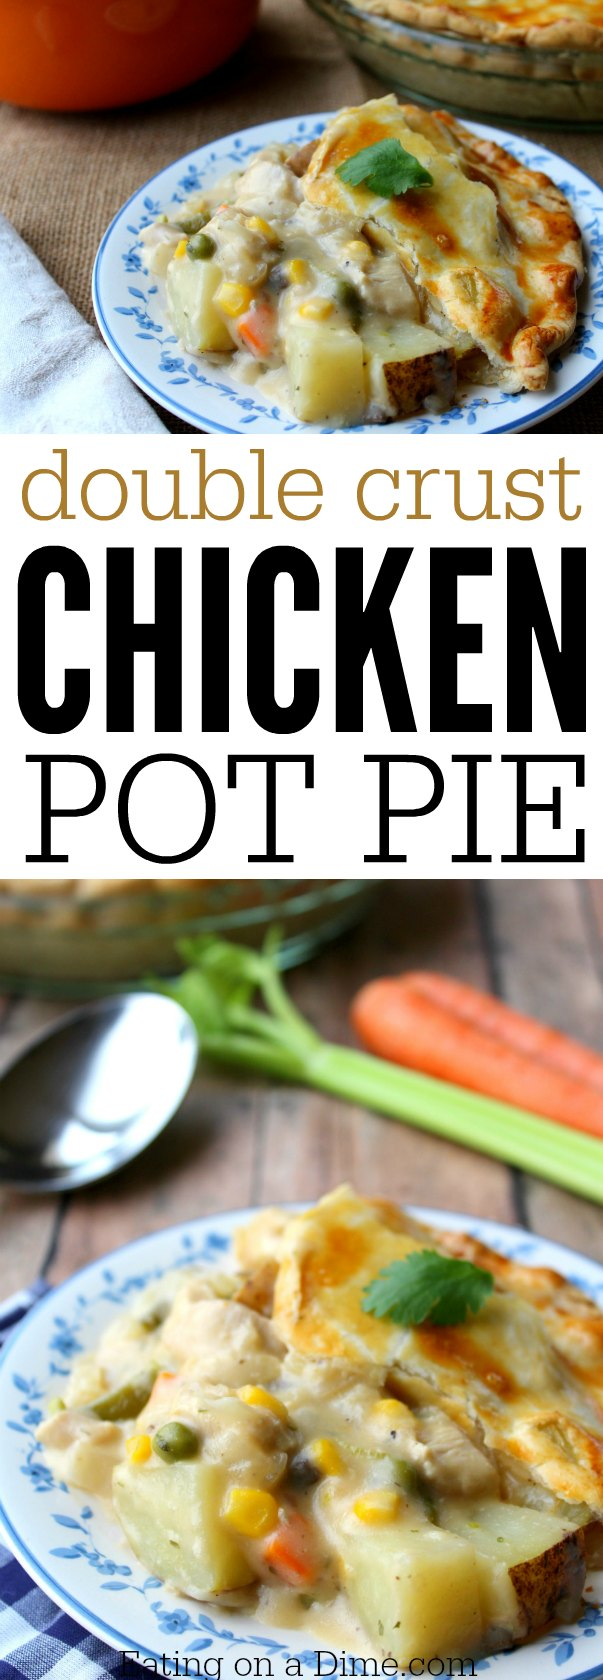 Double Crust Chicken Pot Pie Recipe Eating On A Dime